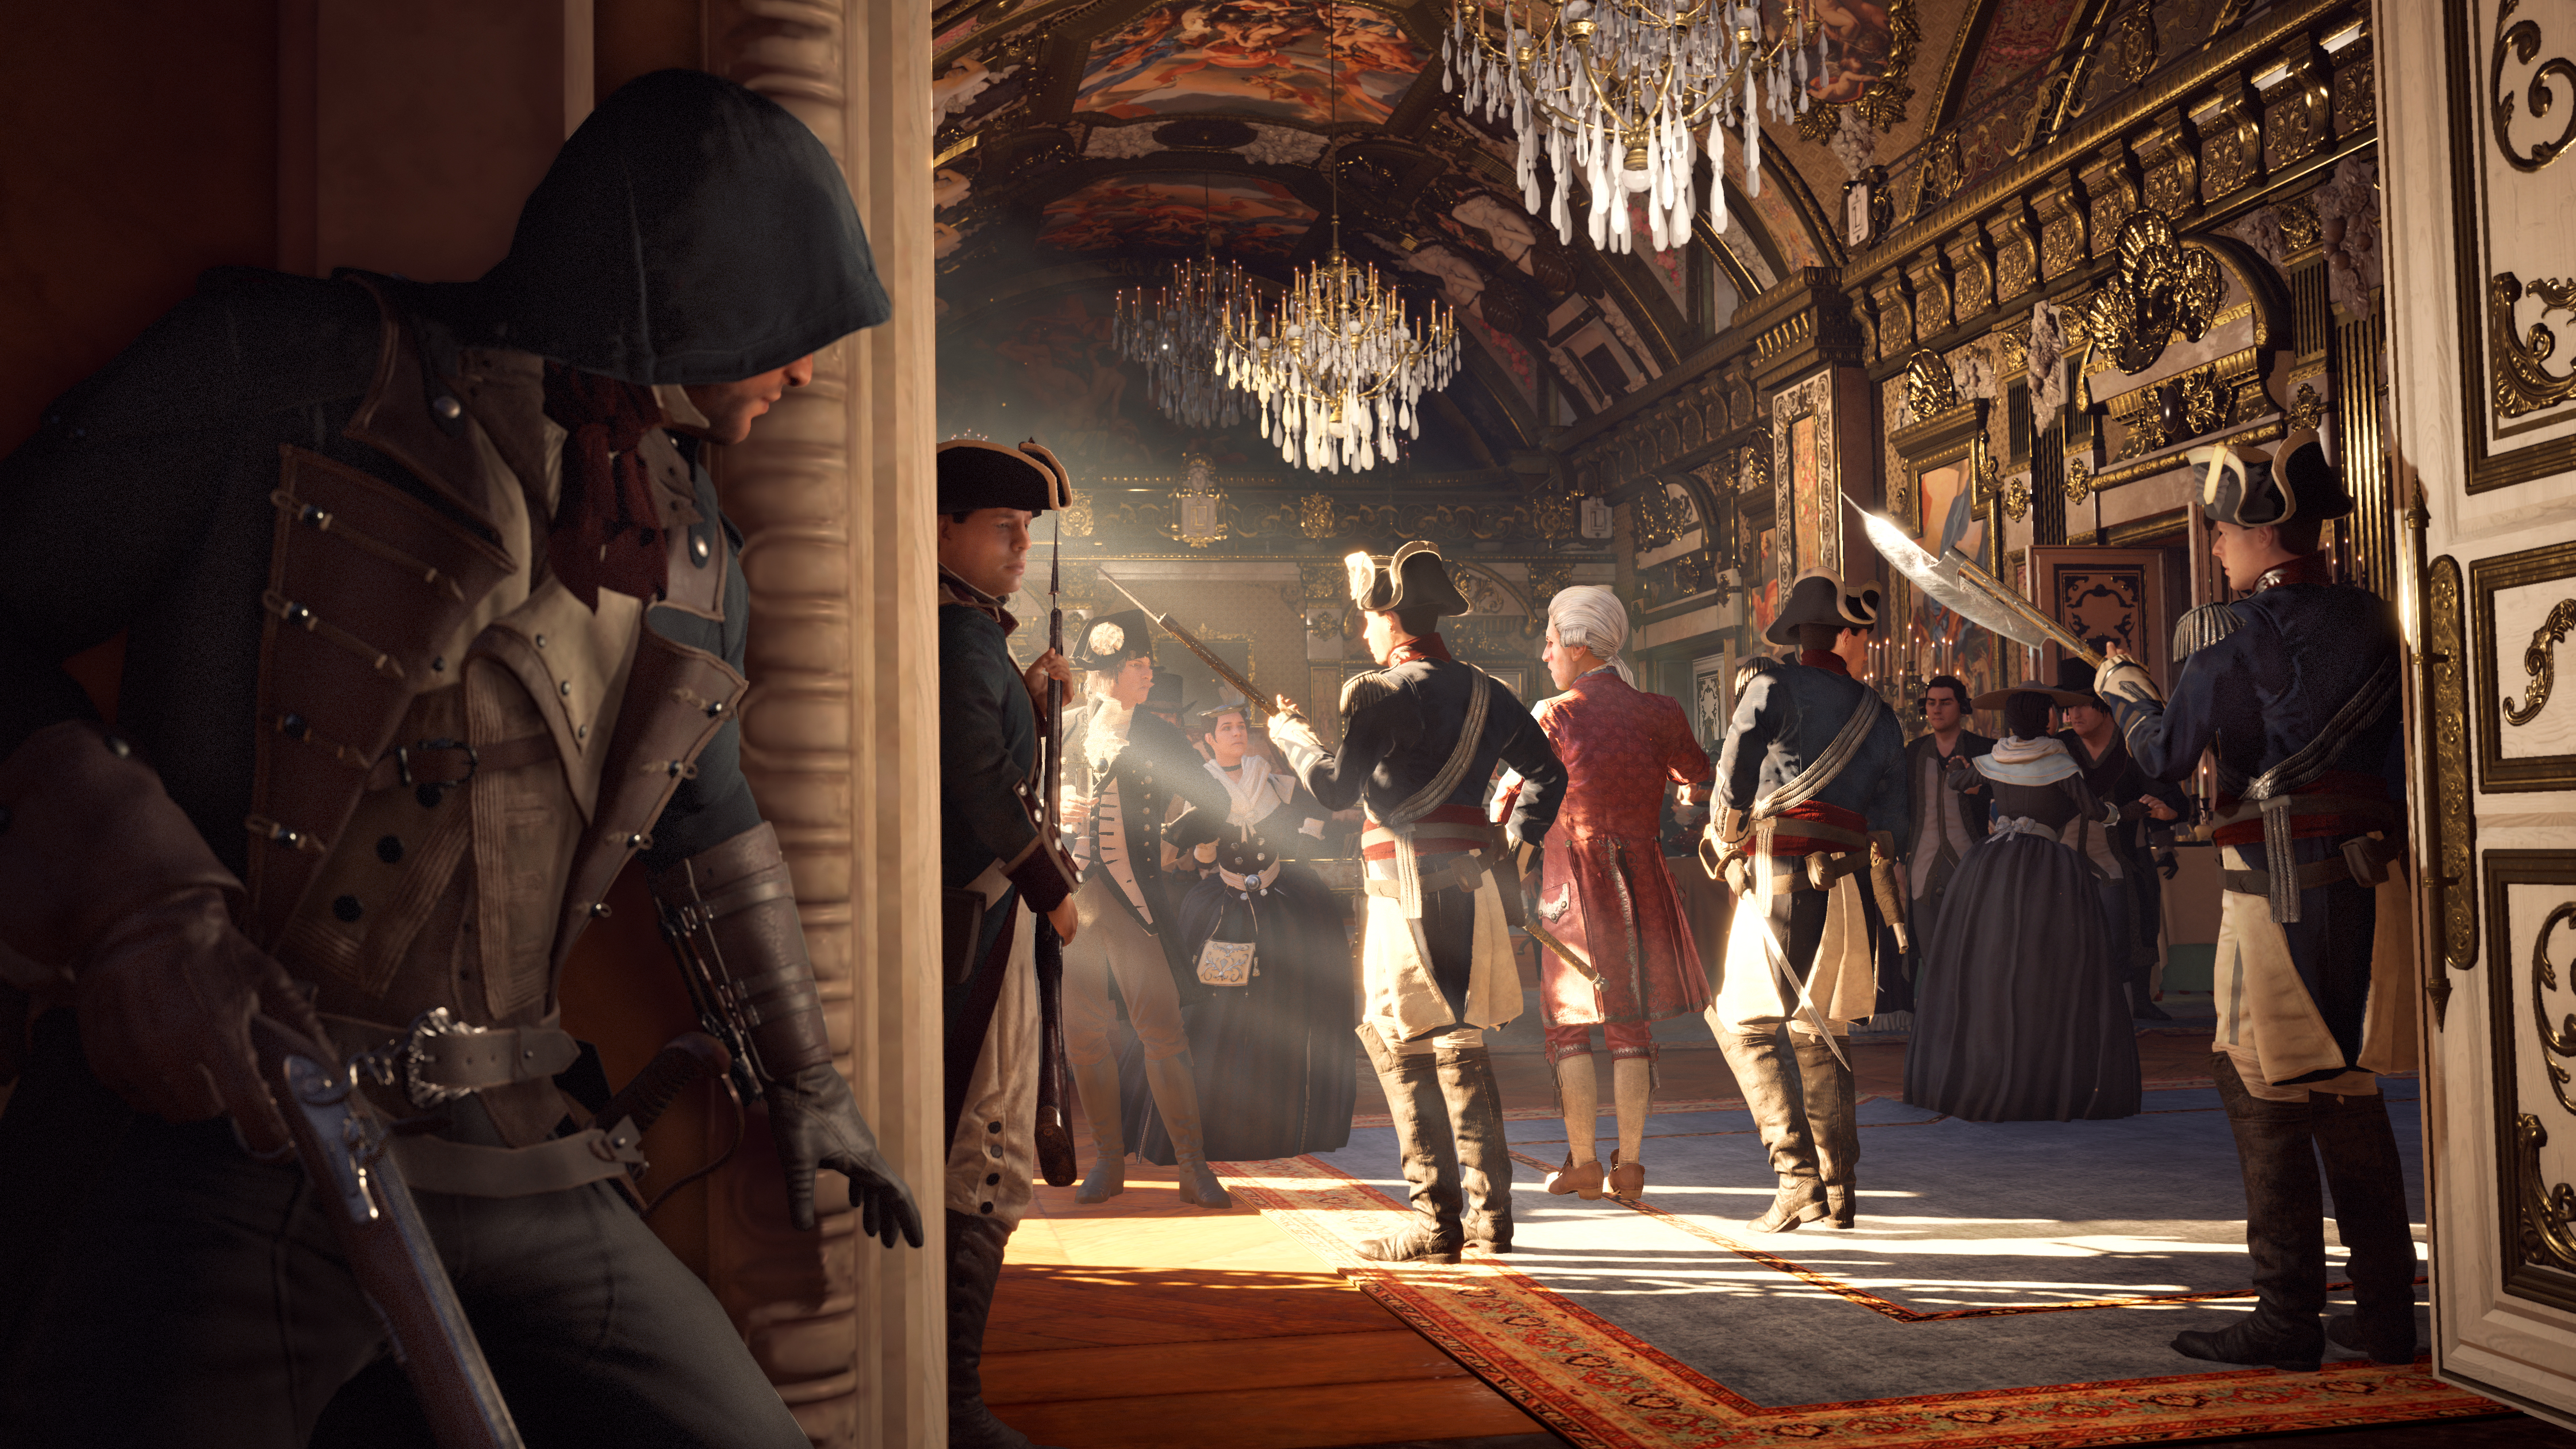 On June 9th, Ubisoft announced new details on the latest edition in their Assassin's Creed franchise.